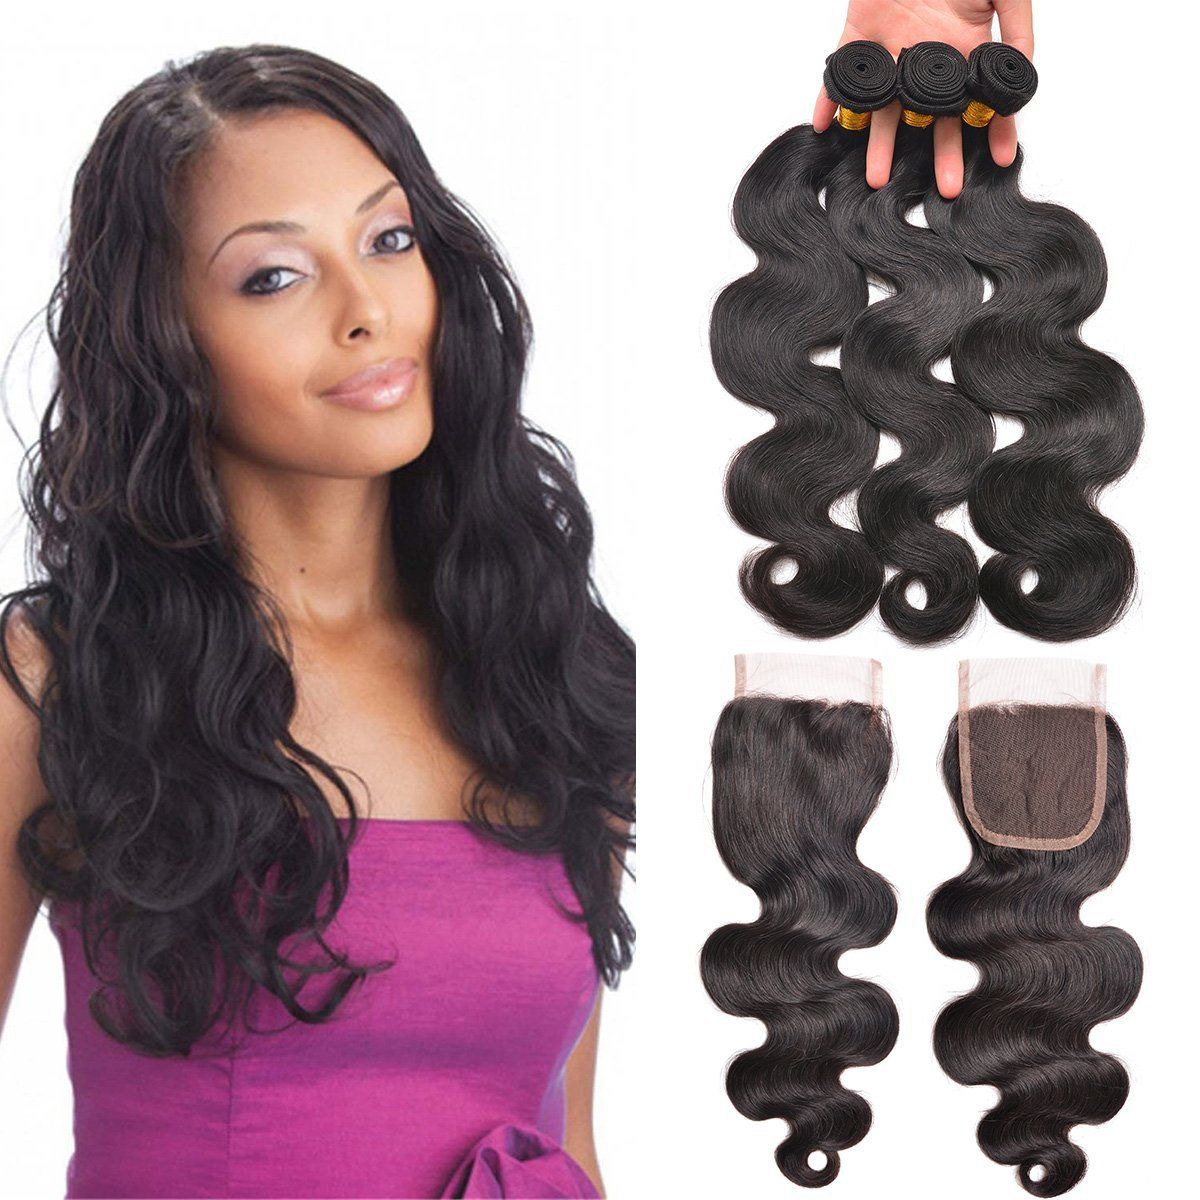 Peruvian Bundle Hair 10 12 14 Inch Body Wave Peruvian Hair 3 Bundles With 8inch 4x4 Free Part Lace Closure Peruvian Hair Hair Extensions Human Hair Extensions